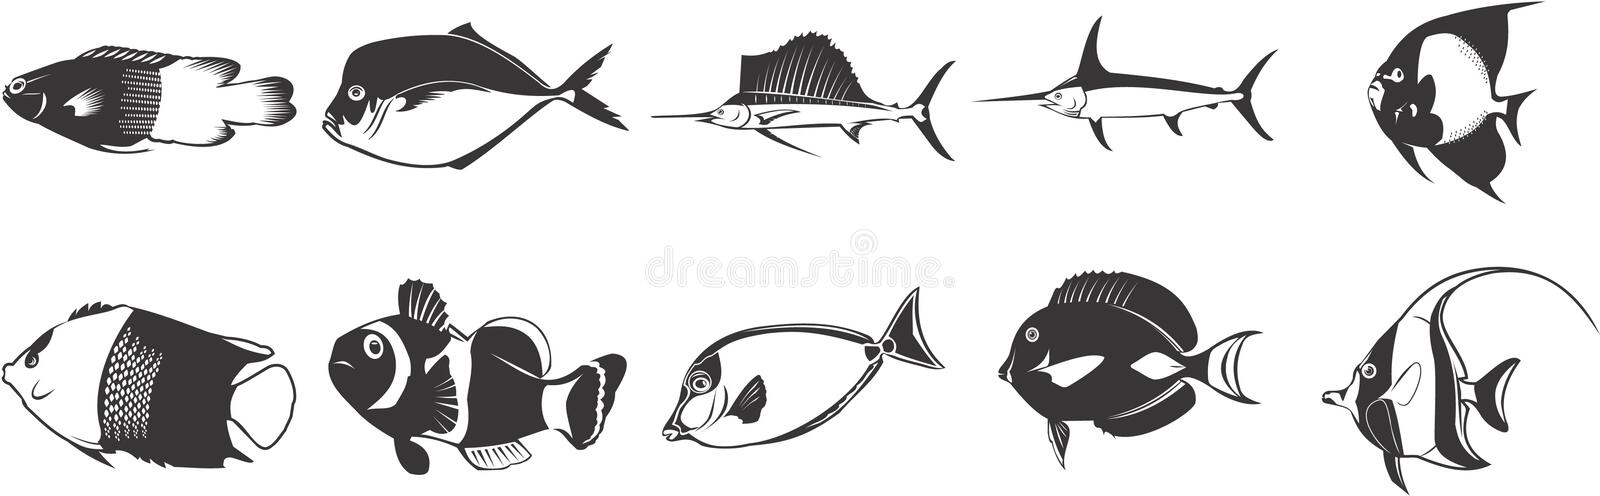 Download Exotic fish icons stock illustration. Image of variety - 5330700